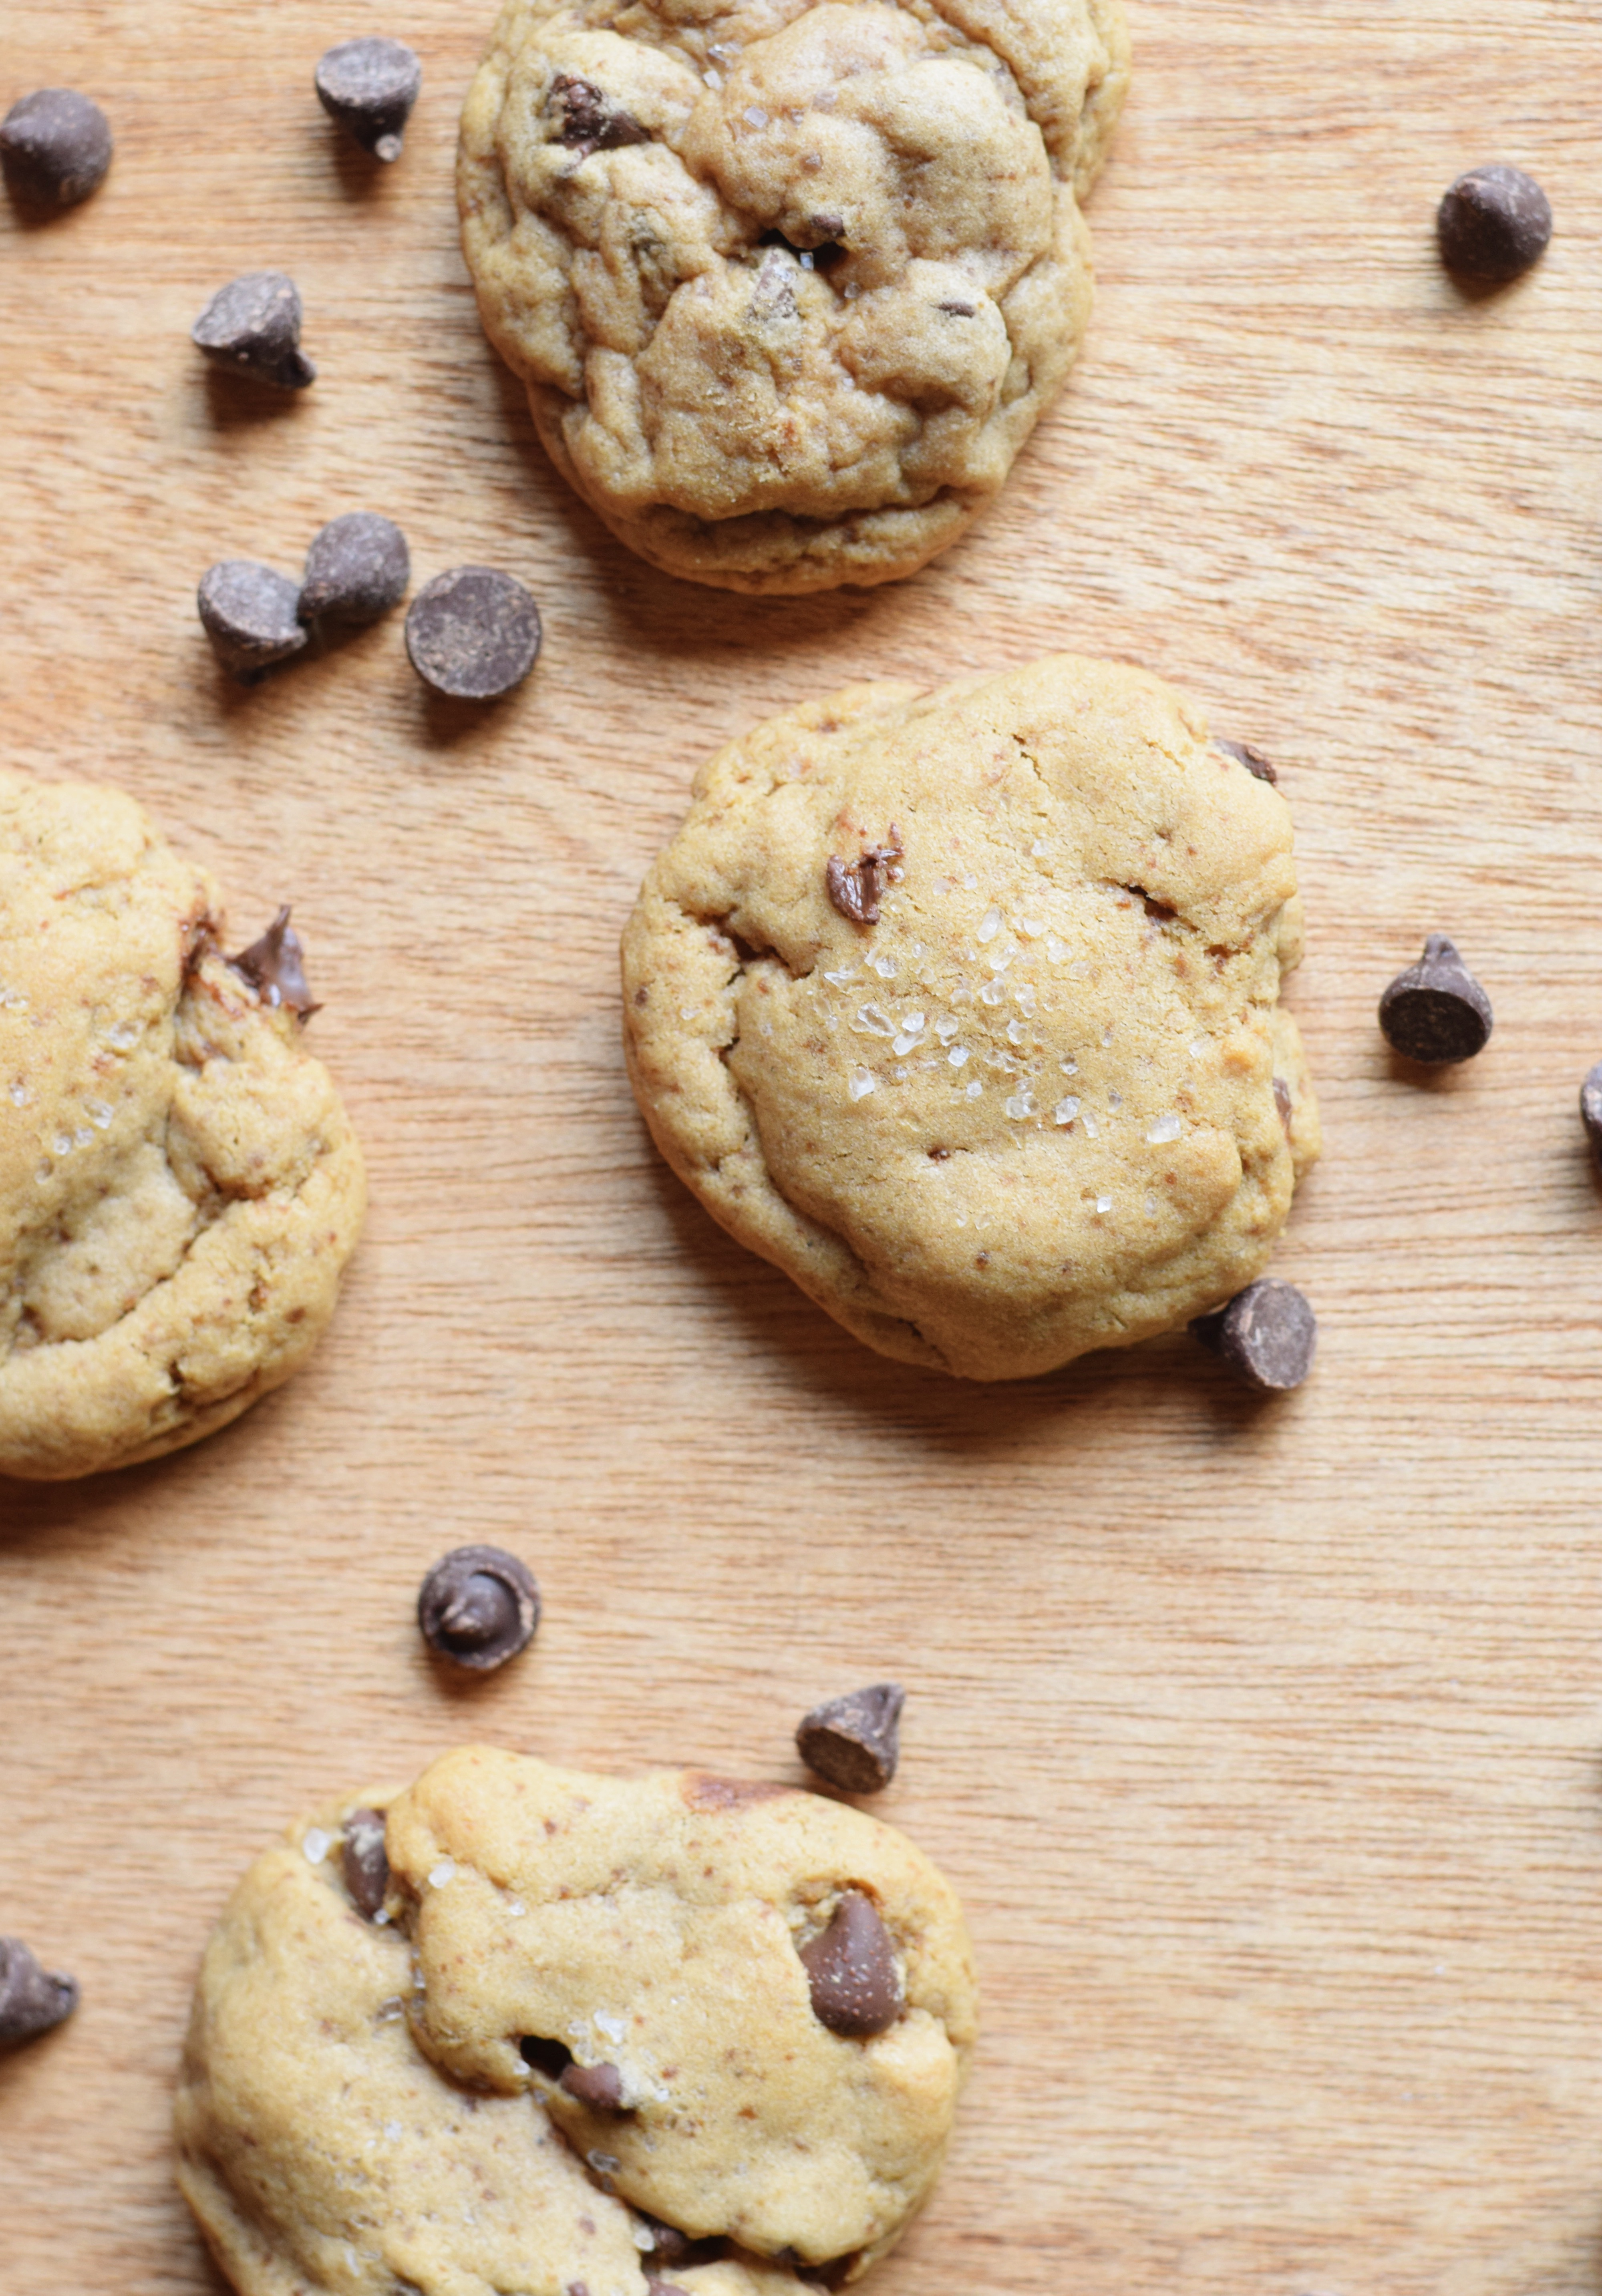 Gluten Free Salted Chocolate Chip Cookies - Easy Gluten Free Cookie Recipe - Gluten Free Cookie Dough - Easy Cookie Recipe - Gluten Free Dessert - Gluten Free Holiday Recipe - Communikait by Kait Hanson